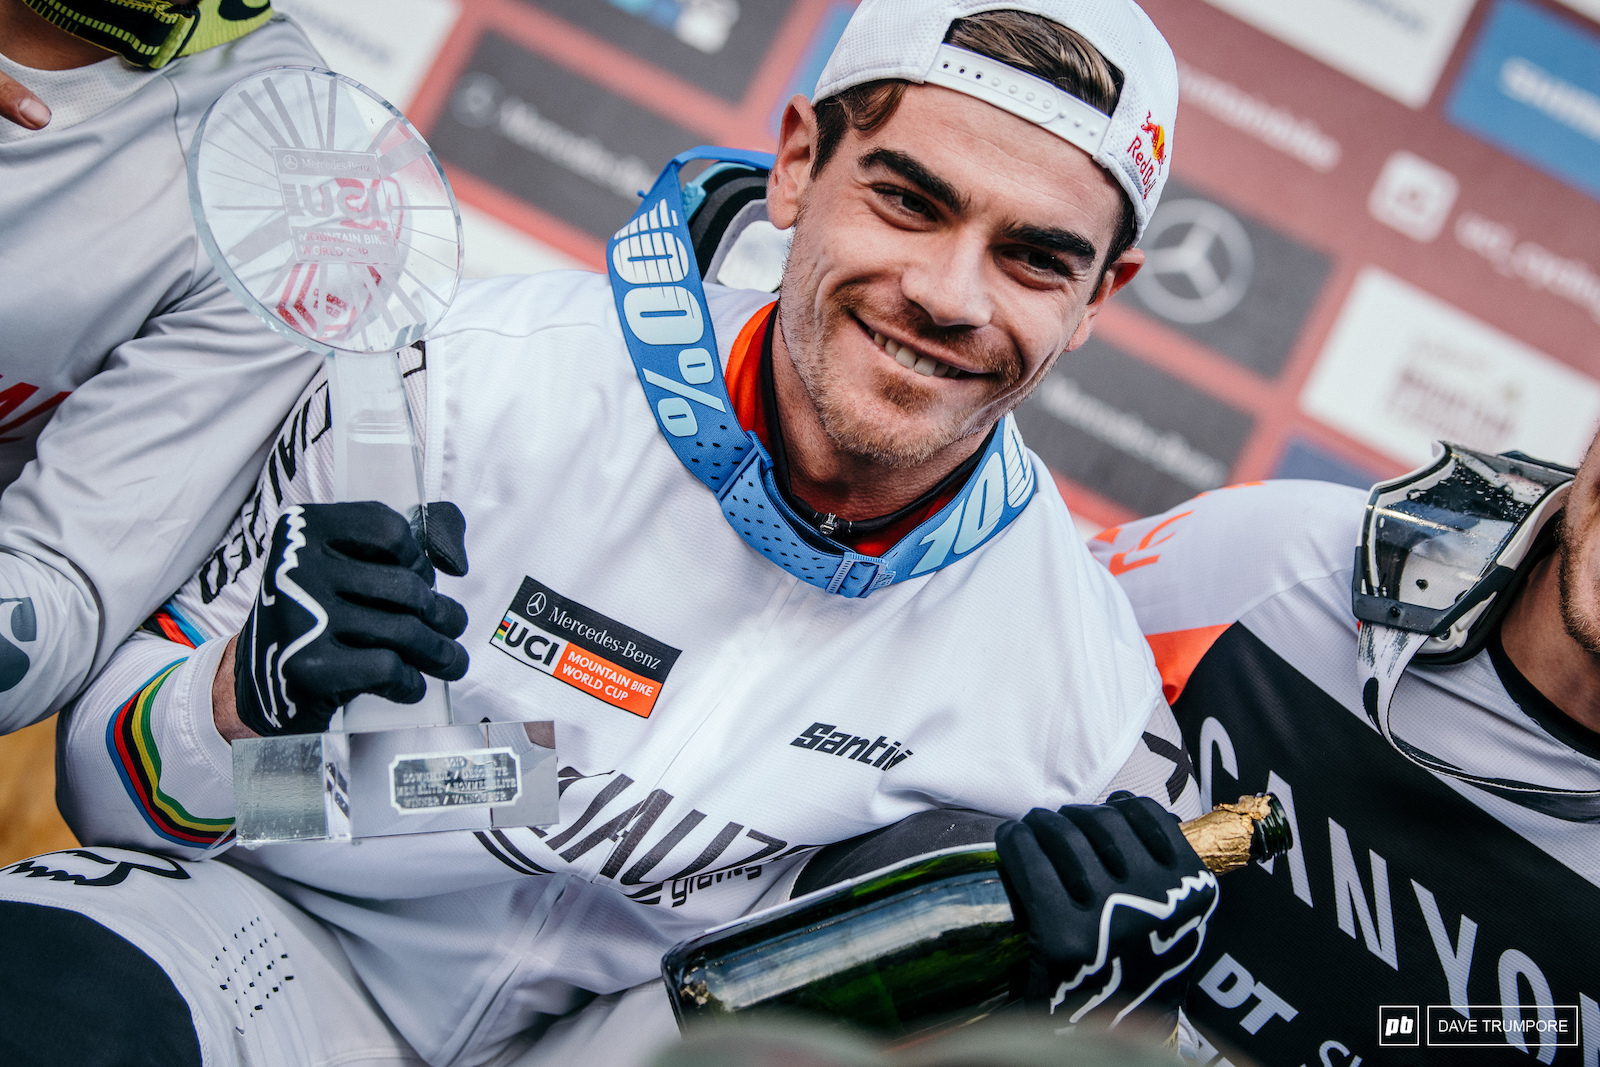 A long awaited first World Cup championship for the four time World Champ. What a season for Loic Bruni